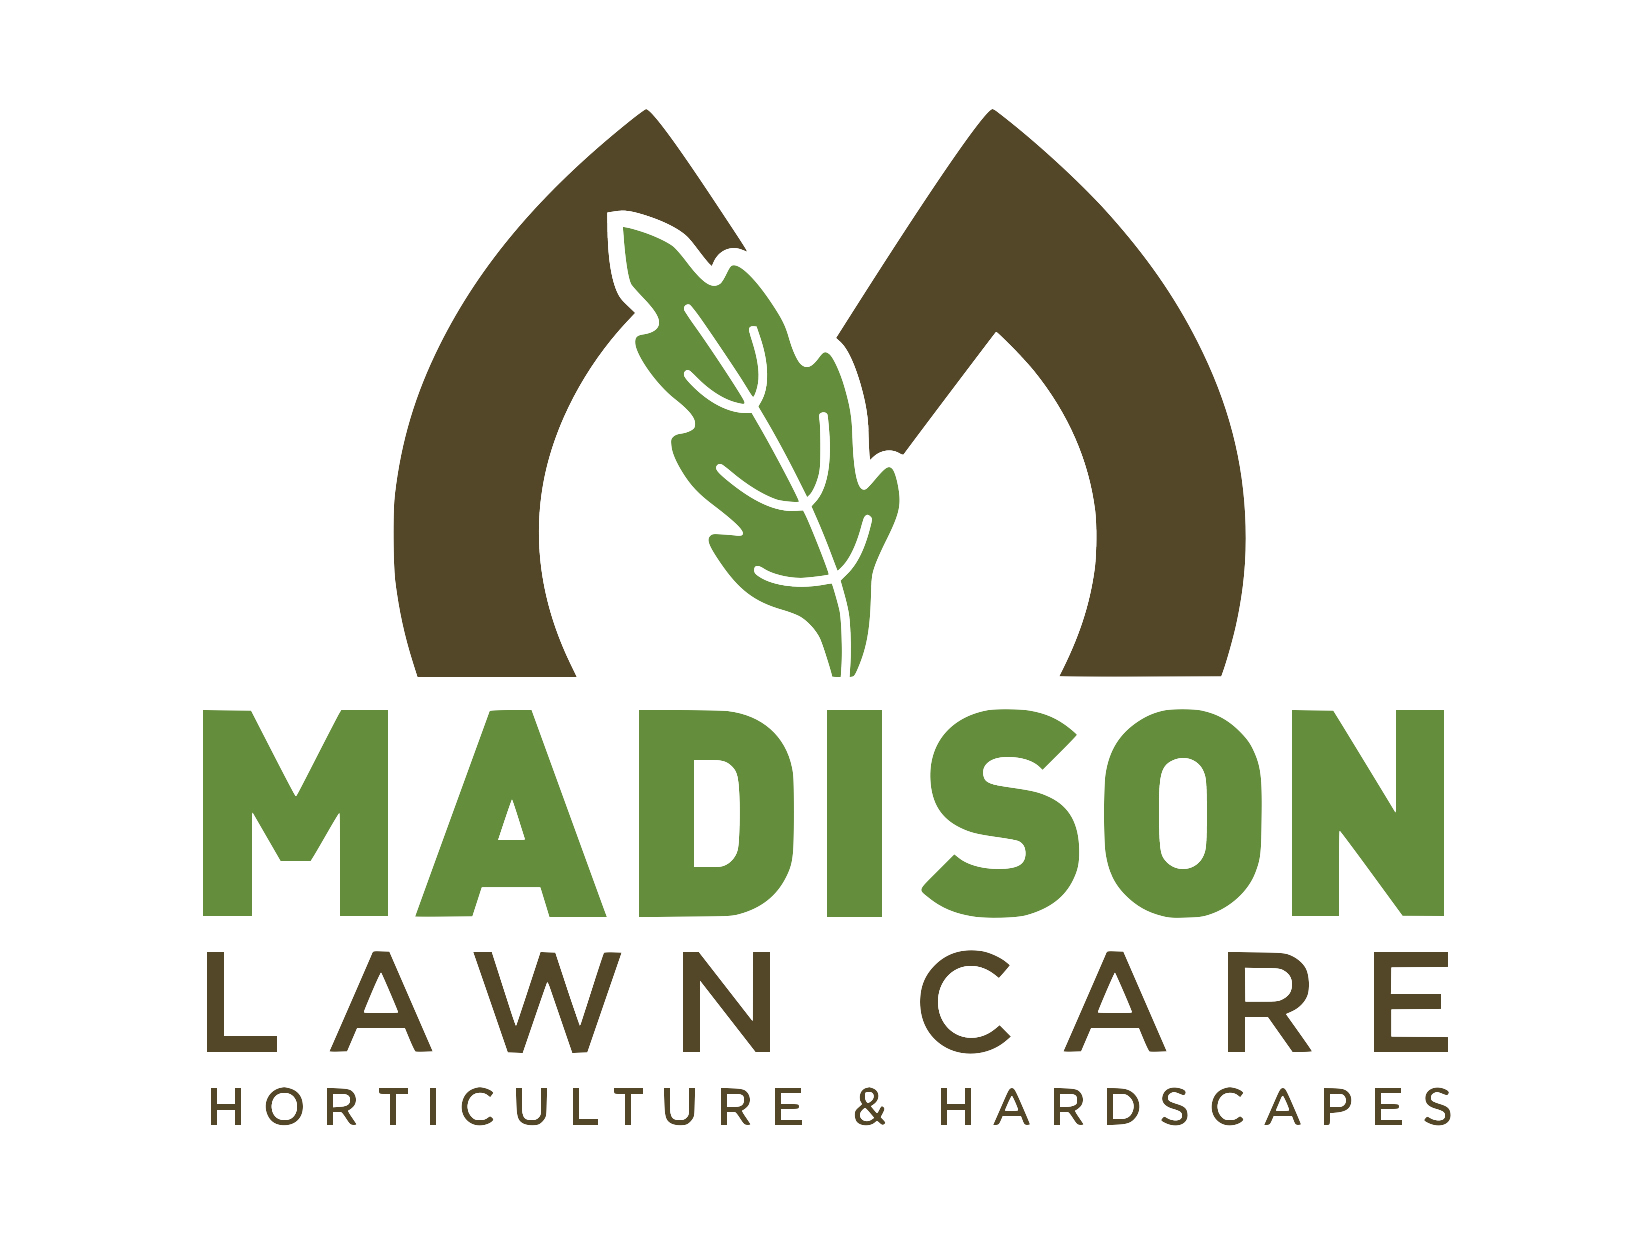 Madison Lawn Care, Ltd.